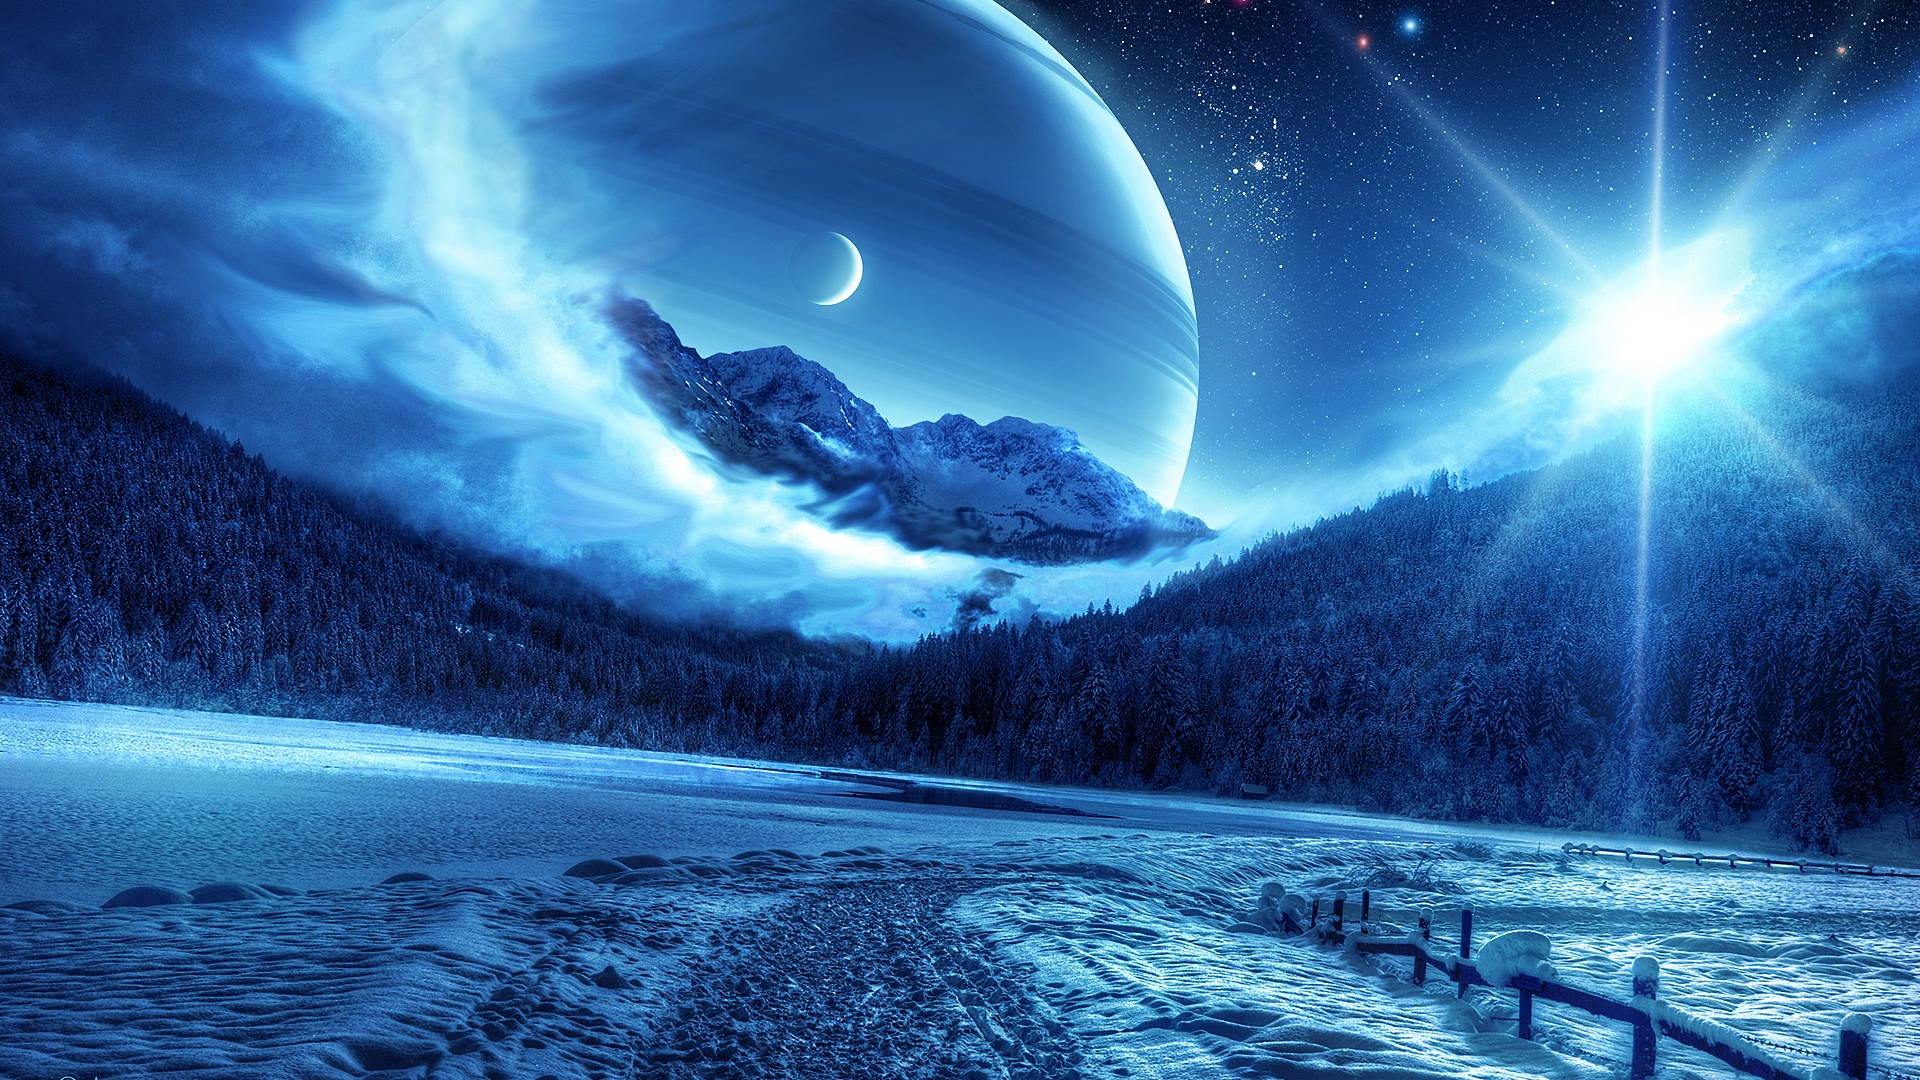 Pictures-of-beautiful-creative-design-forest-winter-planet-space_1920x1080.jpg